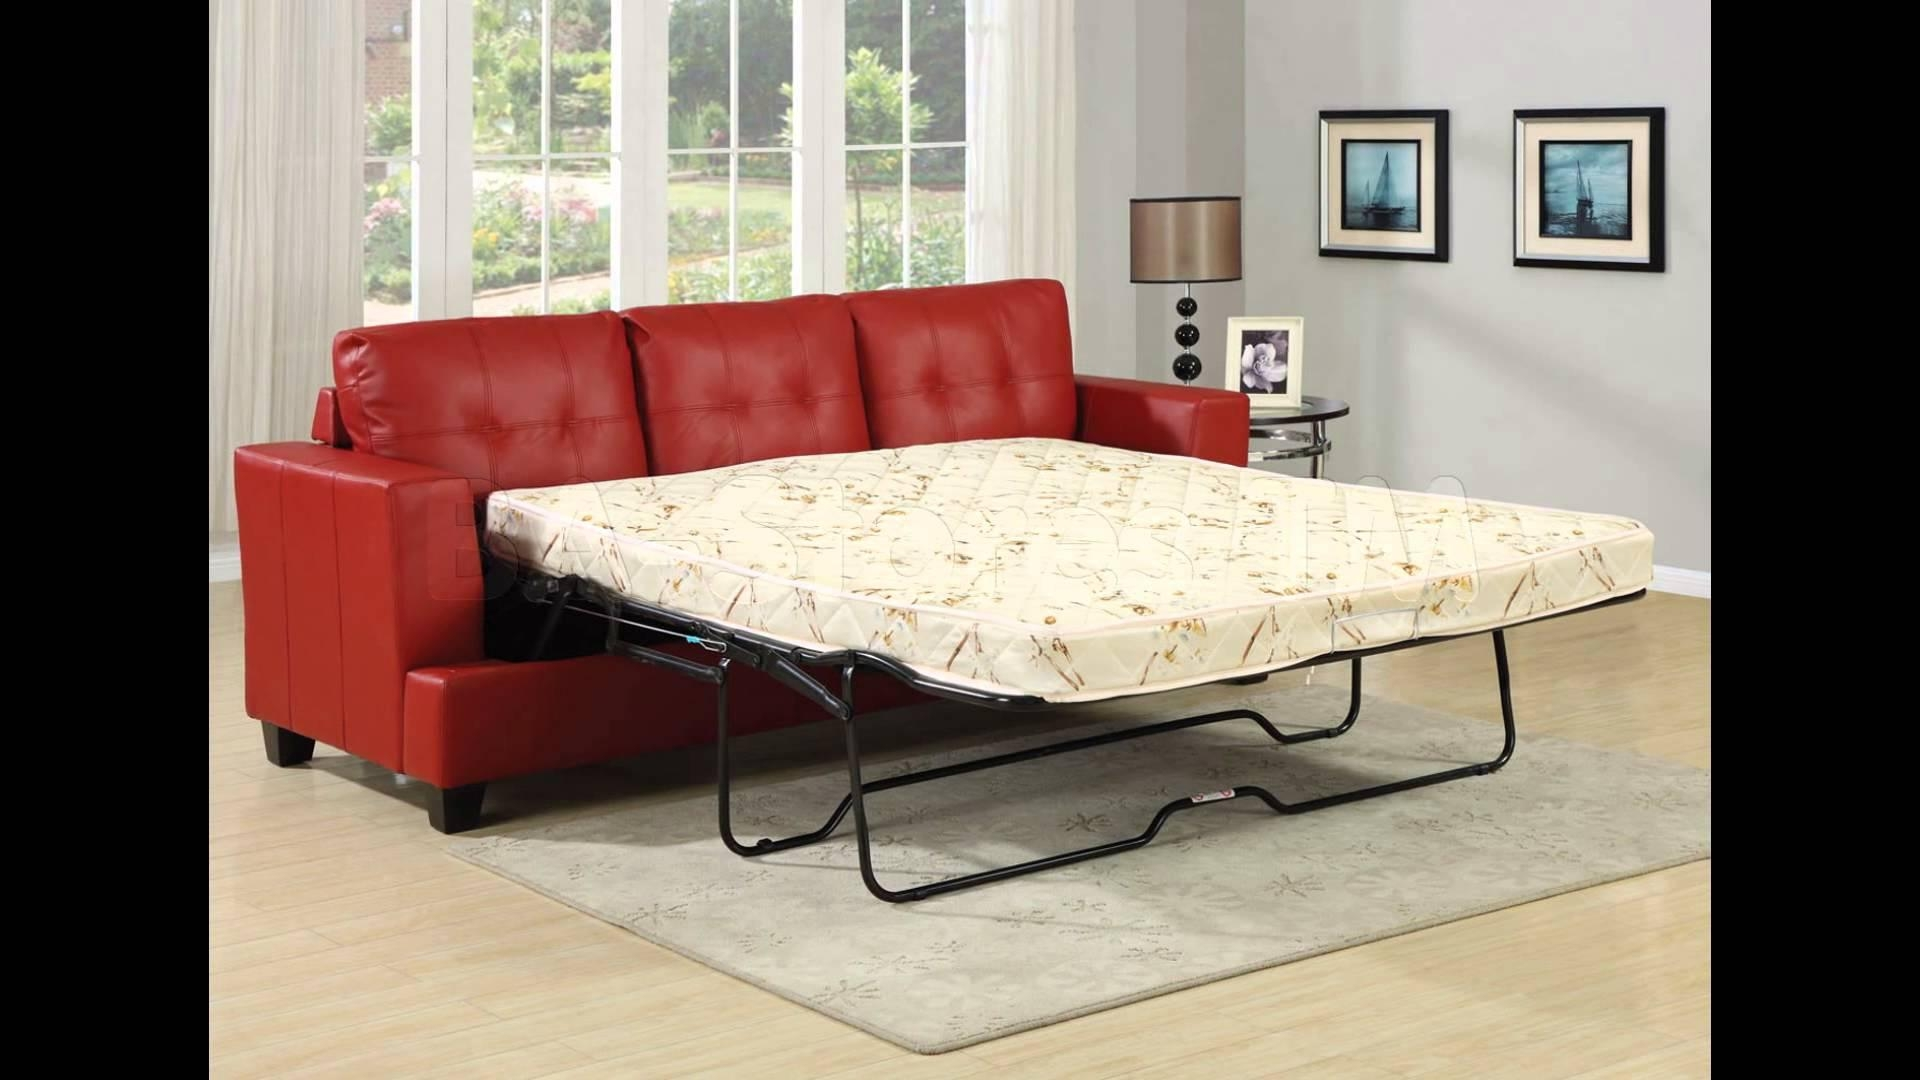 Sleeper Sofa | Sofa Sleeper | Sectional Sleeper Sofa – Youtube Regarding Red Sectional Sleeper Sofas (View 22 of 22)